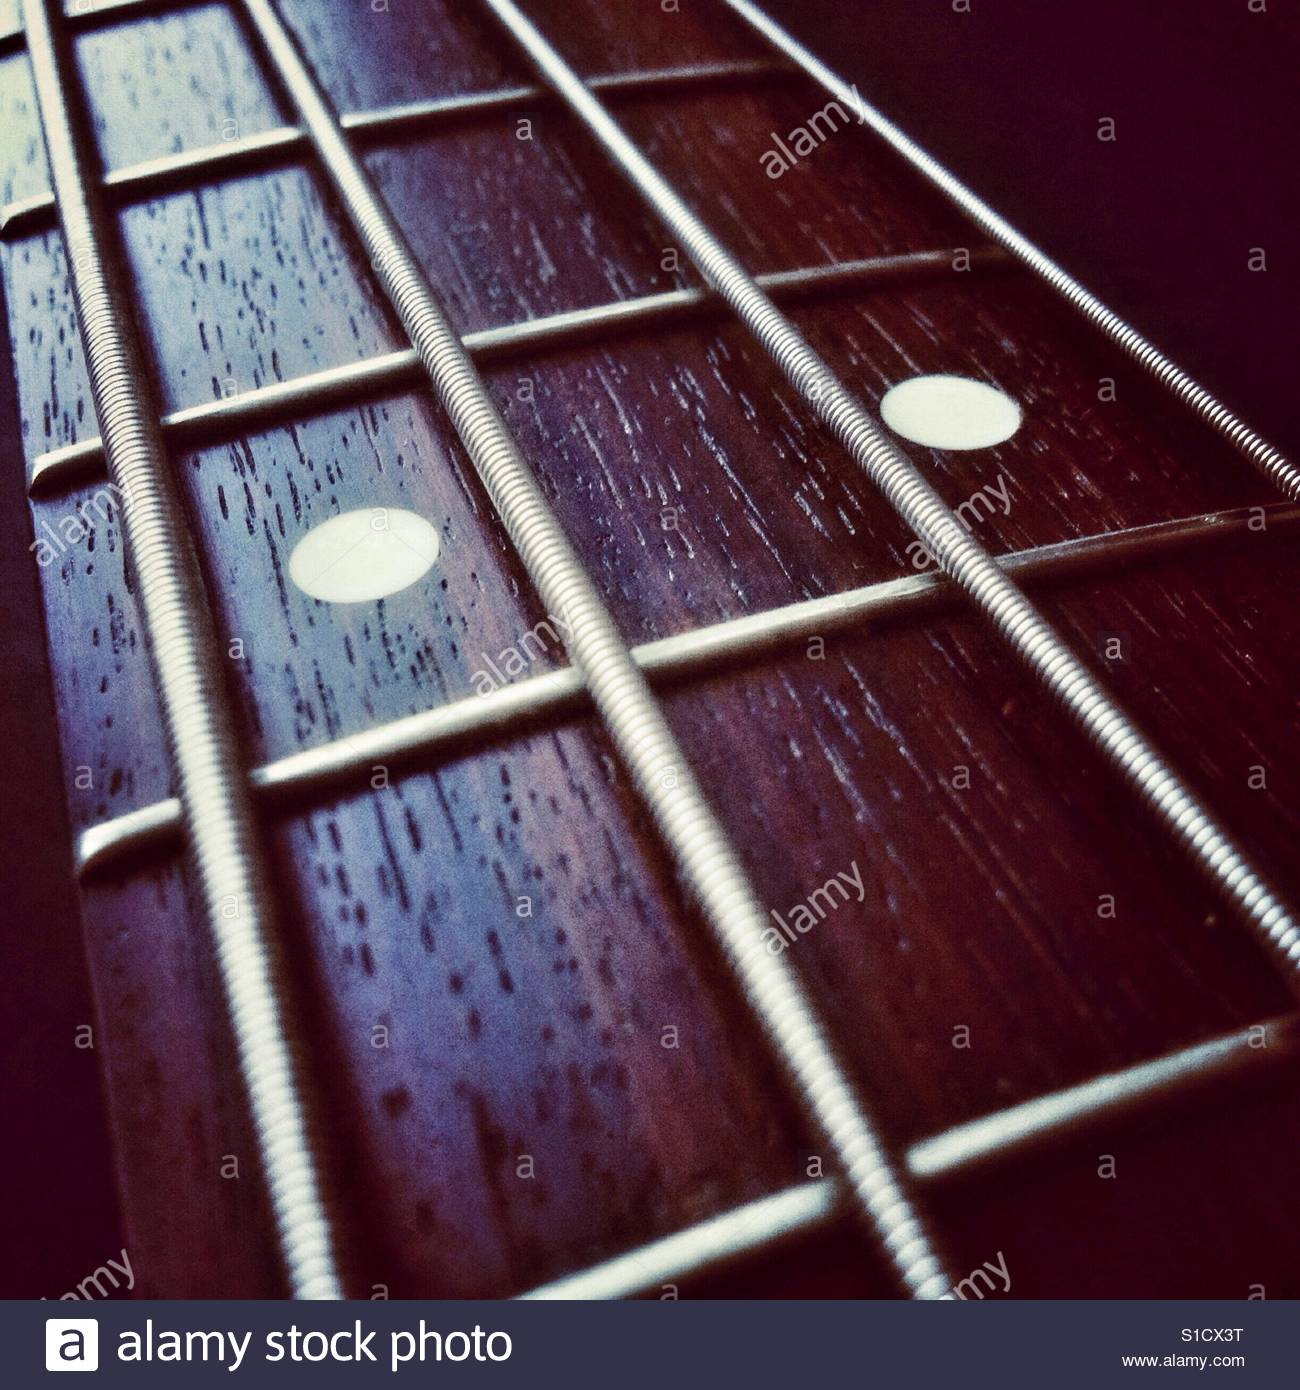 bass guitar closeup of rosewood fretboard on neck and strings stock photo royalty free image. Black Bedroom Furniture Sets. Home Design Ideas